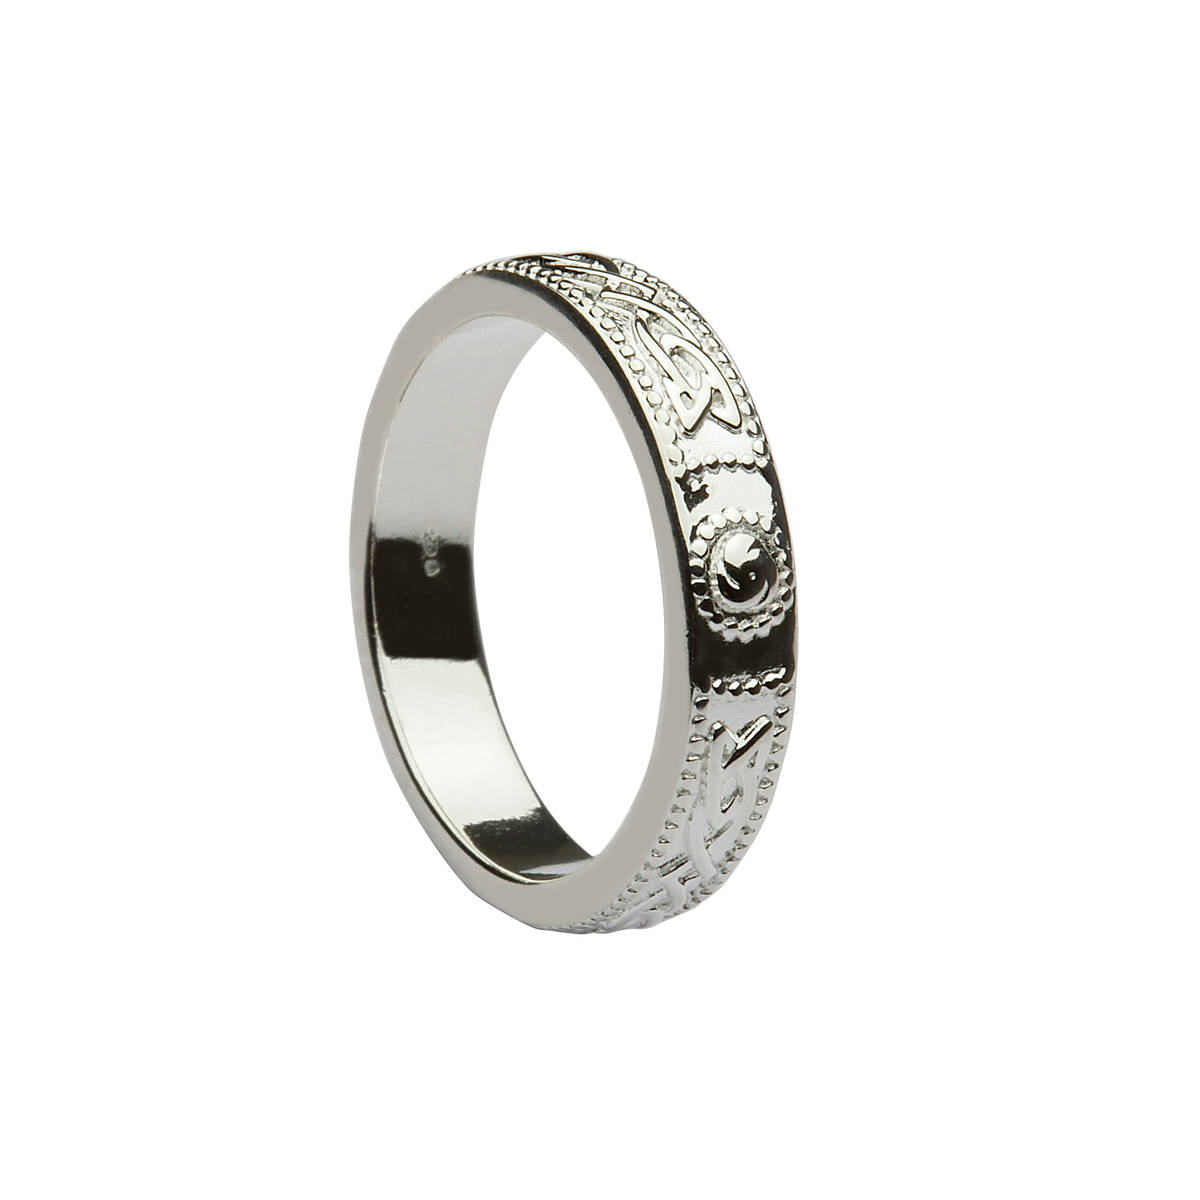 Silver classic celtic design ring